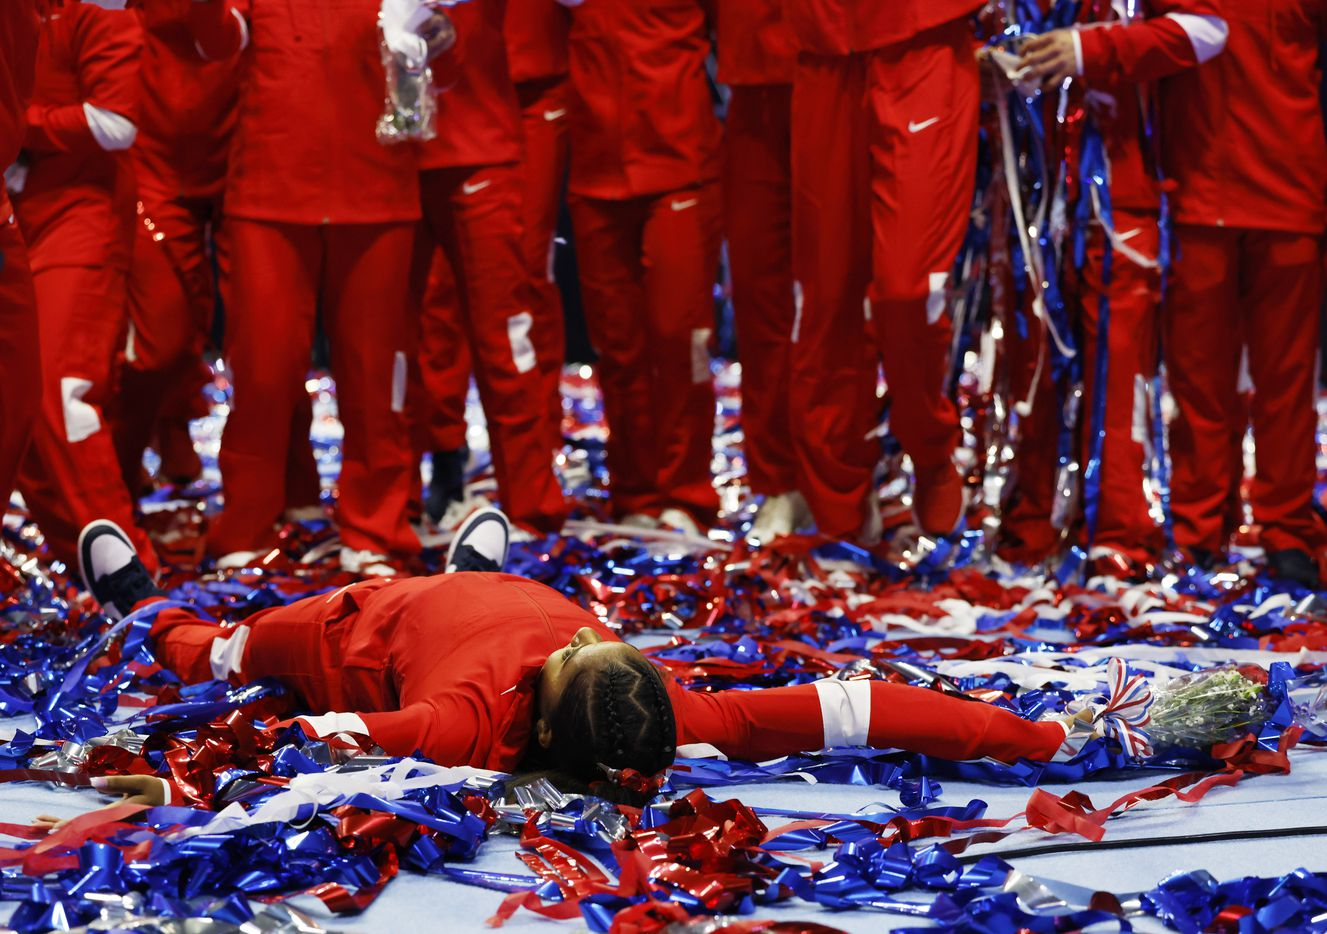 Jordan Chiles celebrates in the streamers after the women's U.S. Olympic gymnastics team was announced during day 2 of the women's 2021 U.S. Olympic Trials at The Dome at America's Center on Sunday, June 27, 2021 in St Louis, Missouri.(Vernon Bryant/The Dallas Morning News)